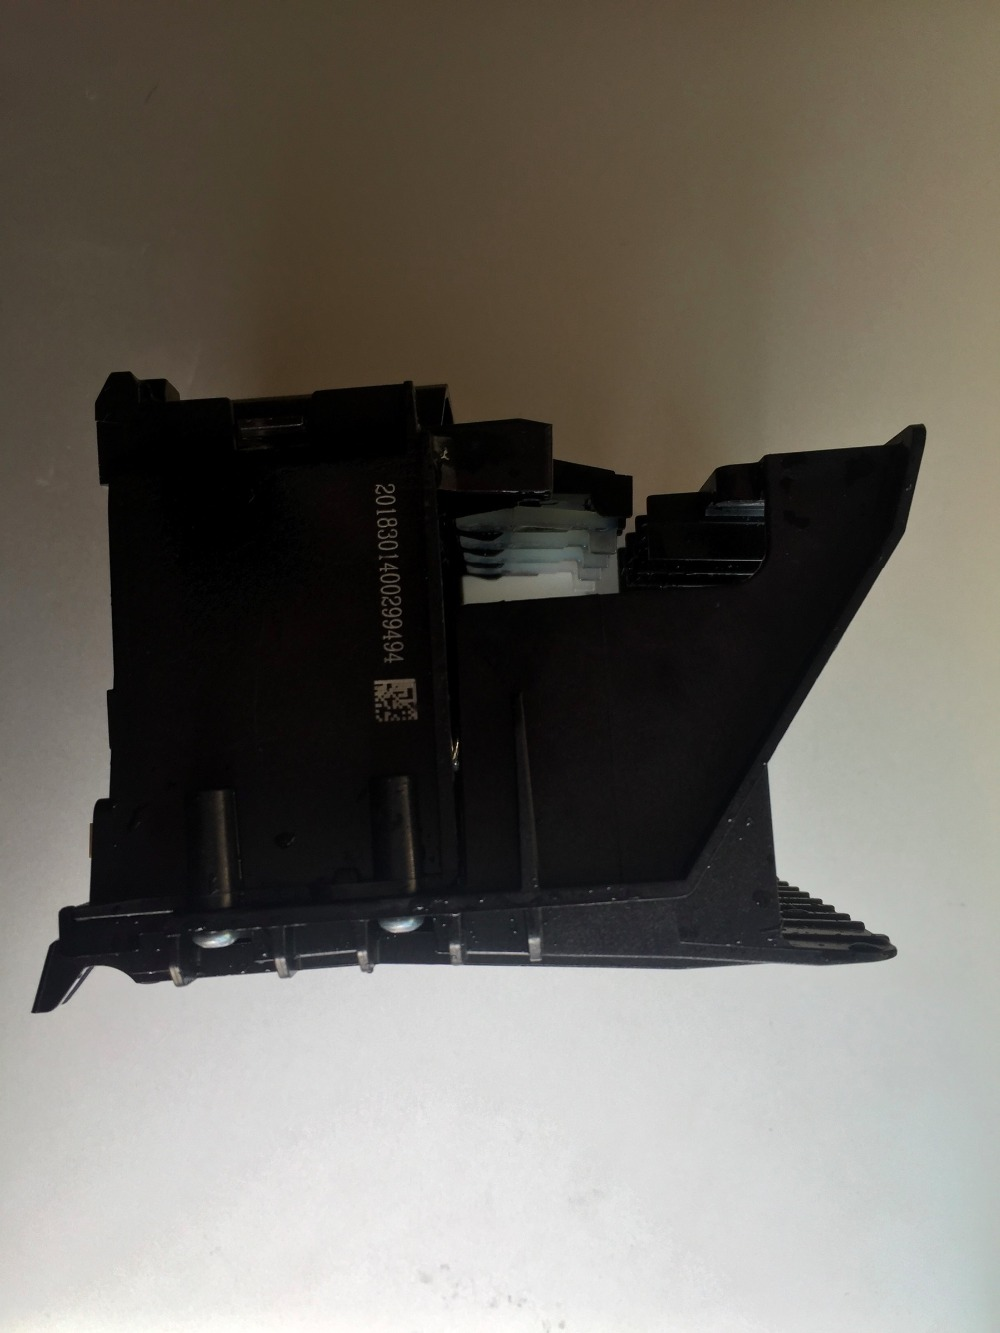 PRINT HEAD CM751 950 951 PrintheaD Hp pro 8100 8600 251DW 276DW 8610 8620 8630 test well 950 951 95%new original printhead print head for hp 8600 8100 8620 8630 8640 8660 251dw 276 printer head for hp 950